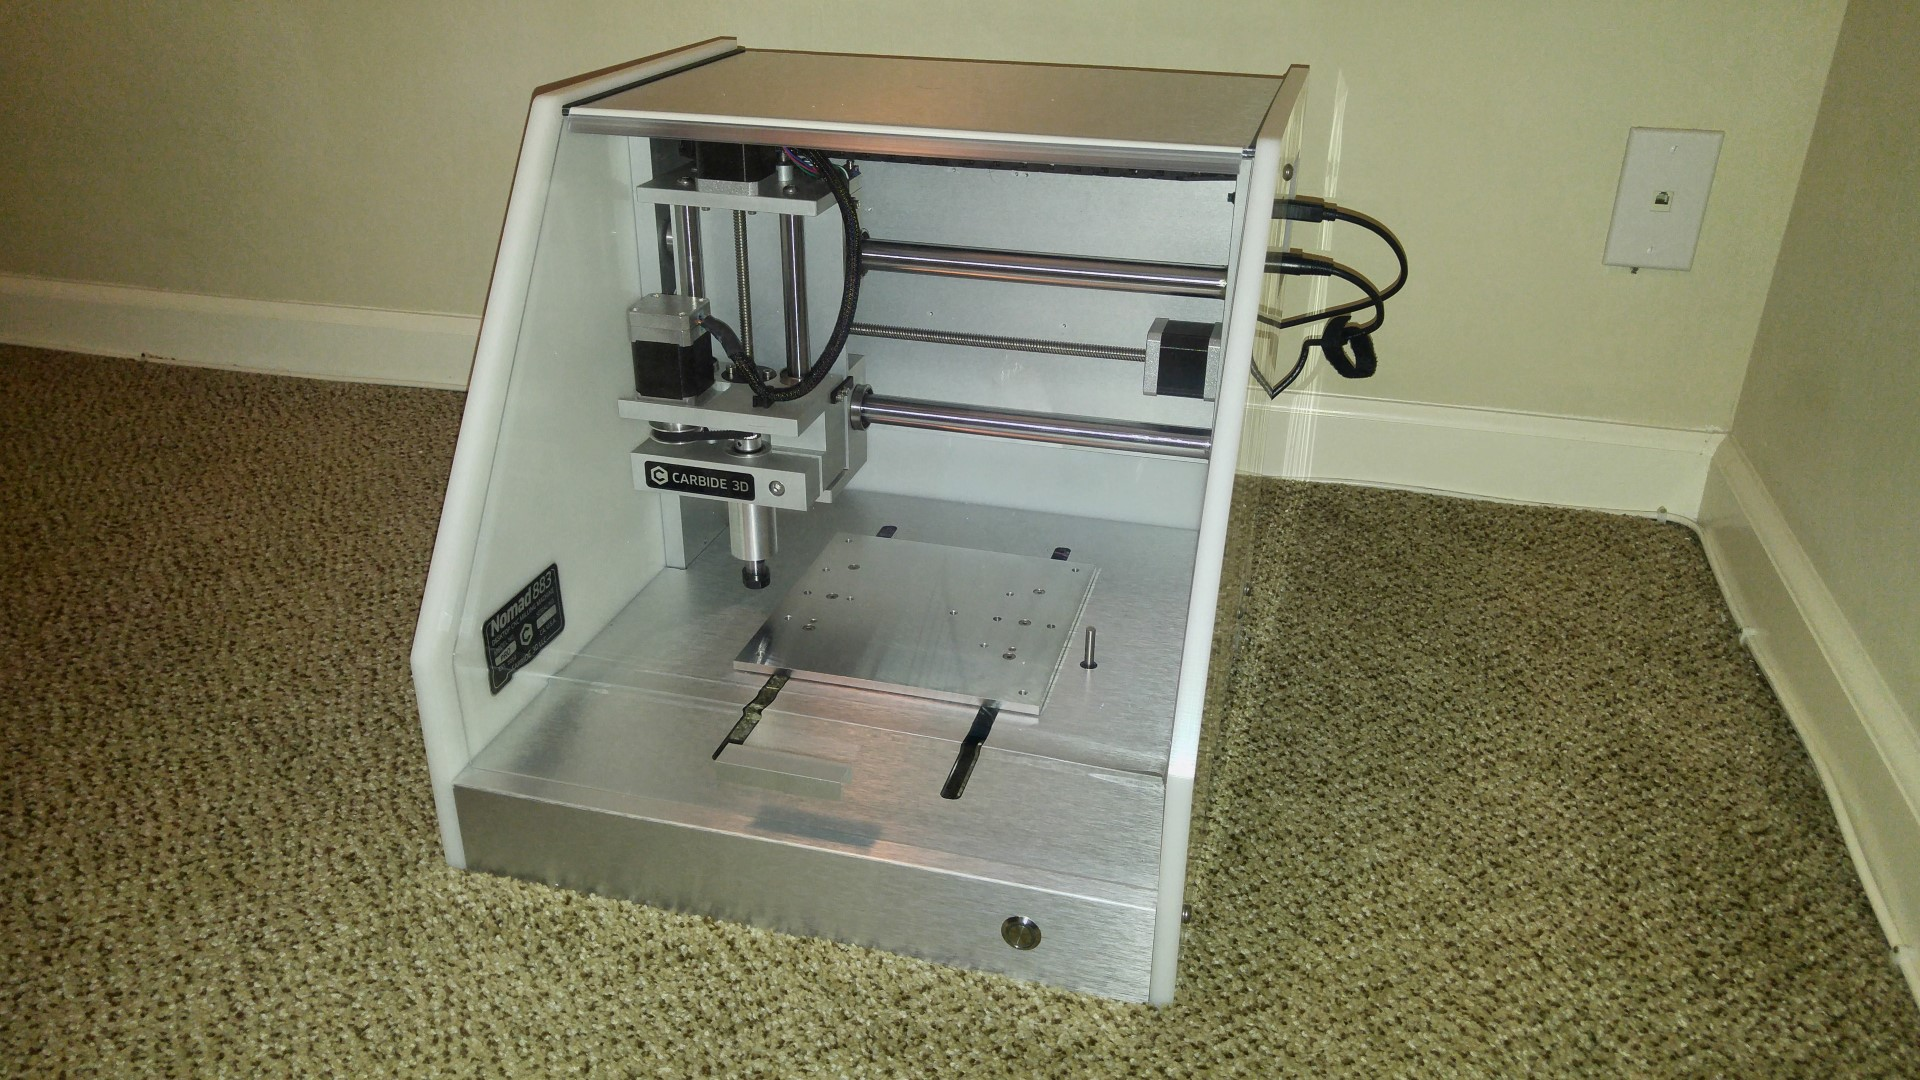 Nomad 883 Pro, my first CNC mill | Eleccelerator